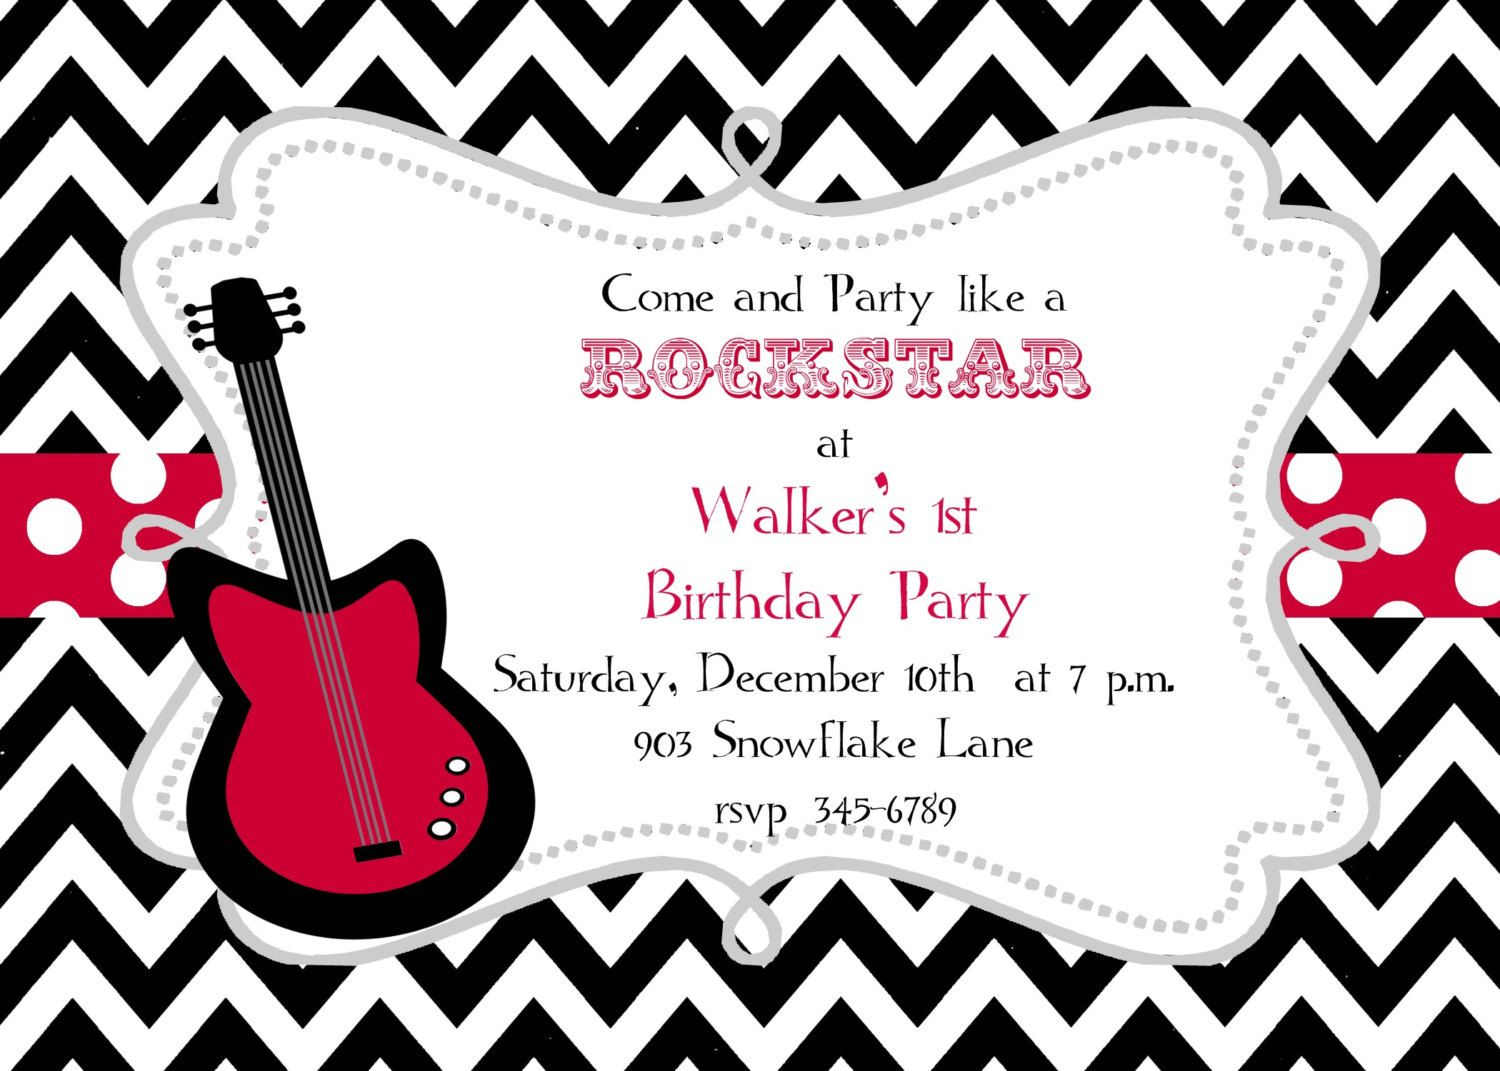 12 Rock Star Guitar Birthhday party or Baby Shower invitations with